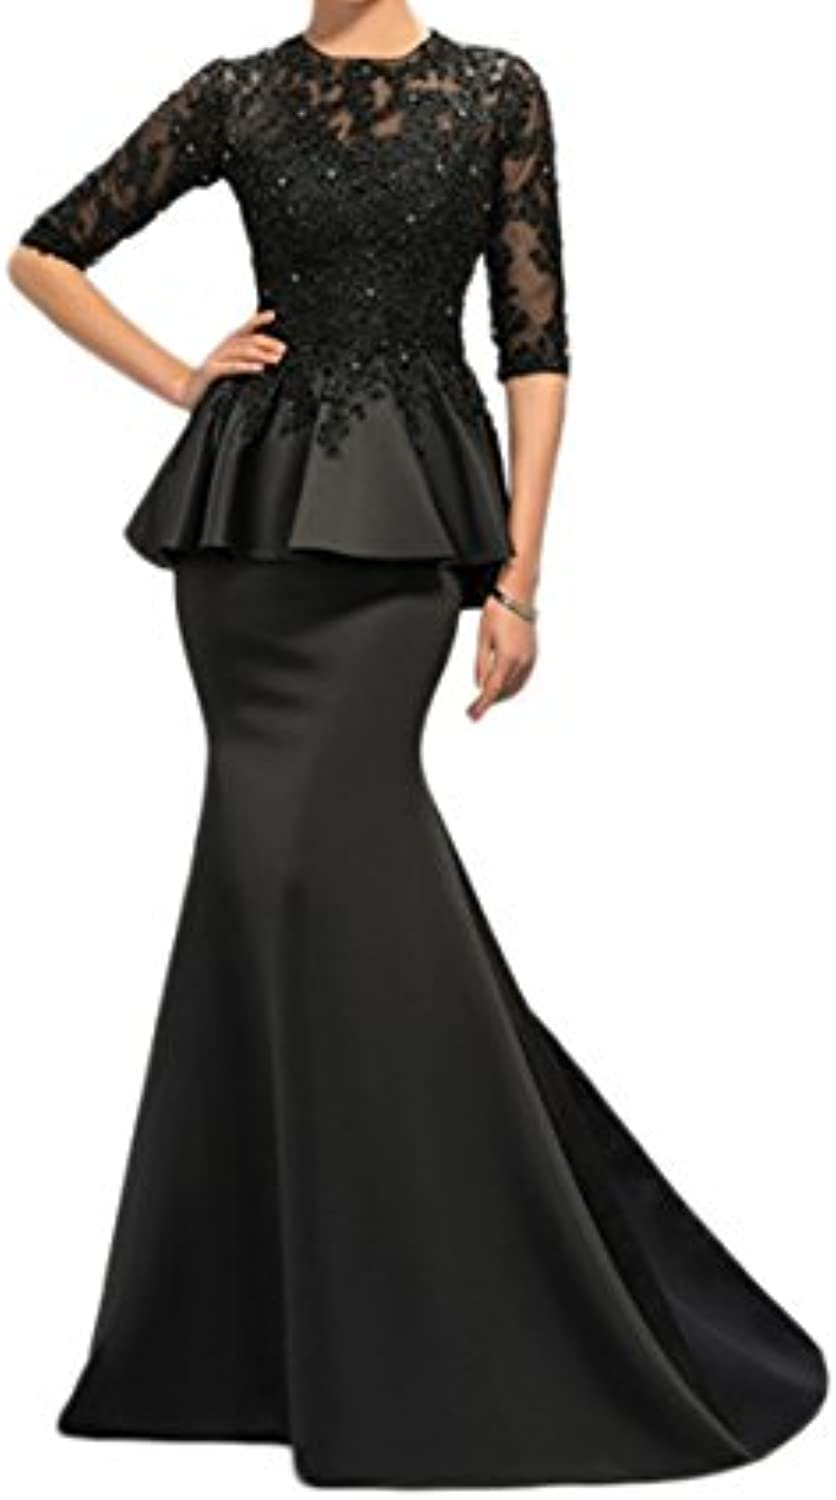 Kaitaijidian Women's Black Mermaid Lace Appliques Beaded Half Sleeves Beaded Long Evening Dress Prom Gowns